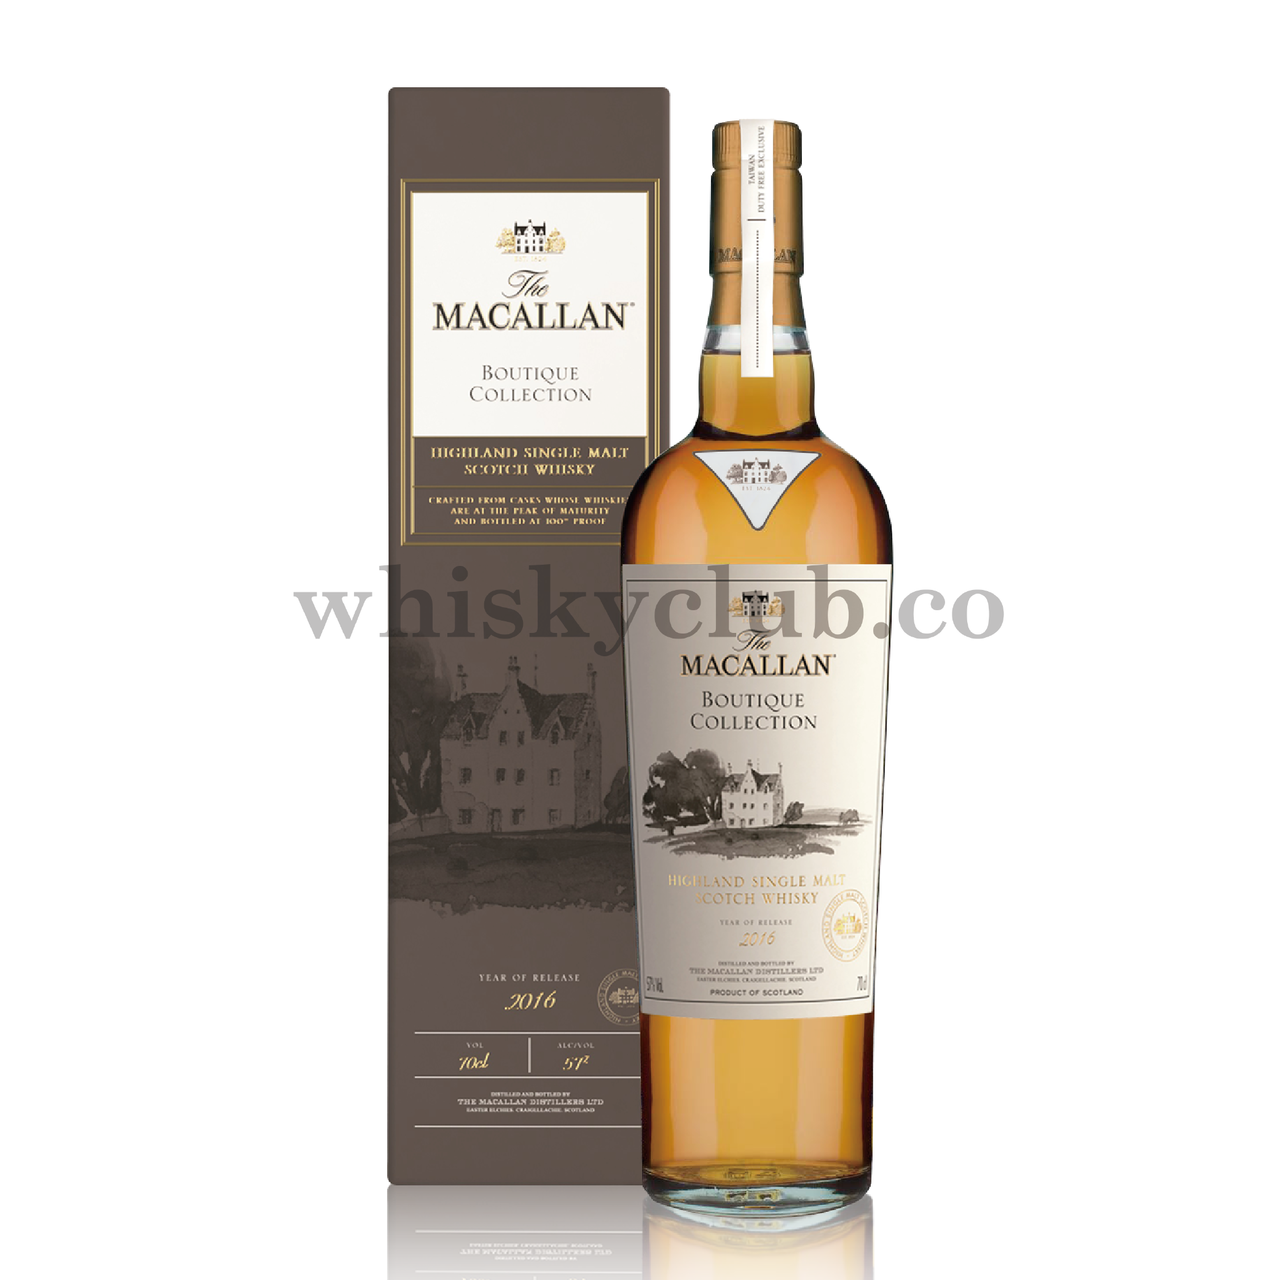 Macallan boutique %e5%95%86%e5%93%81%e7%85%a7 01